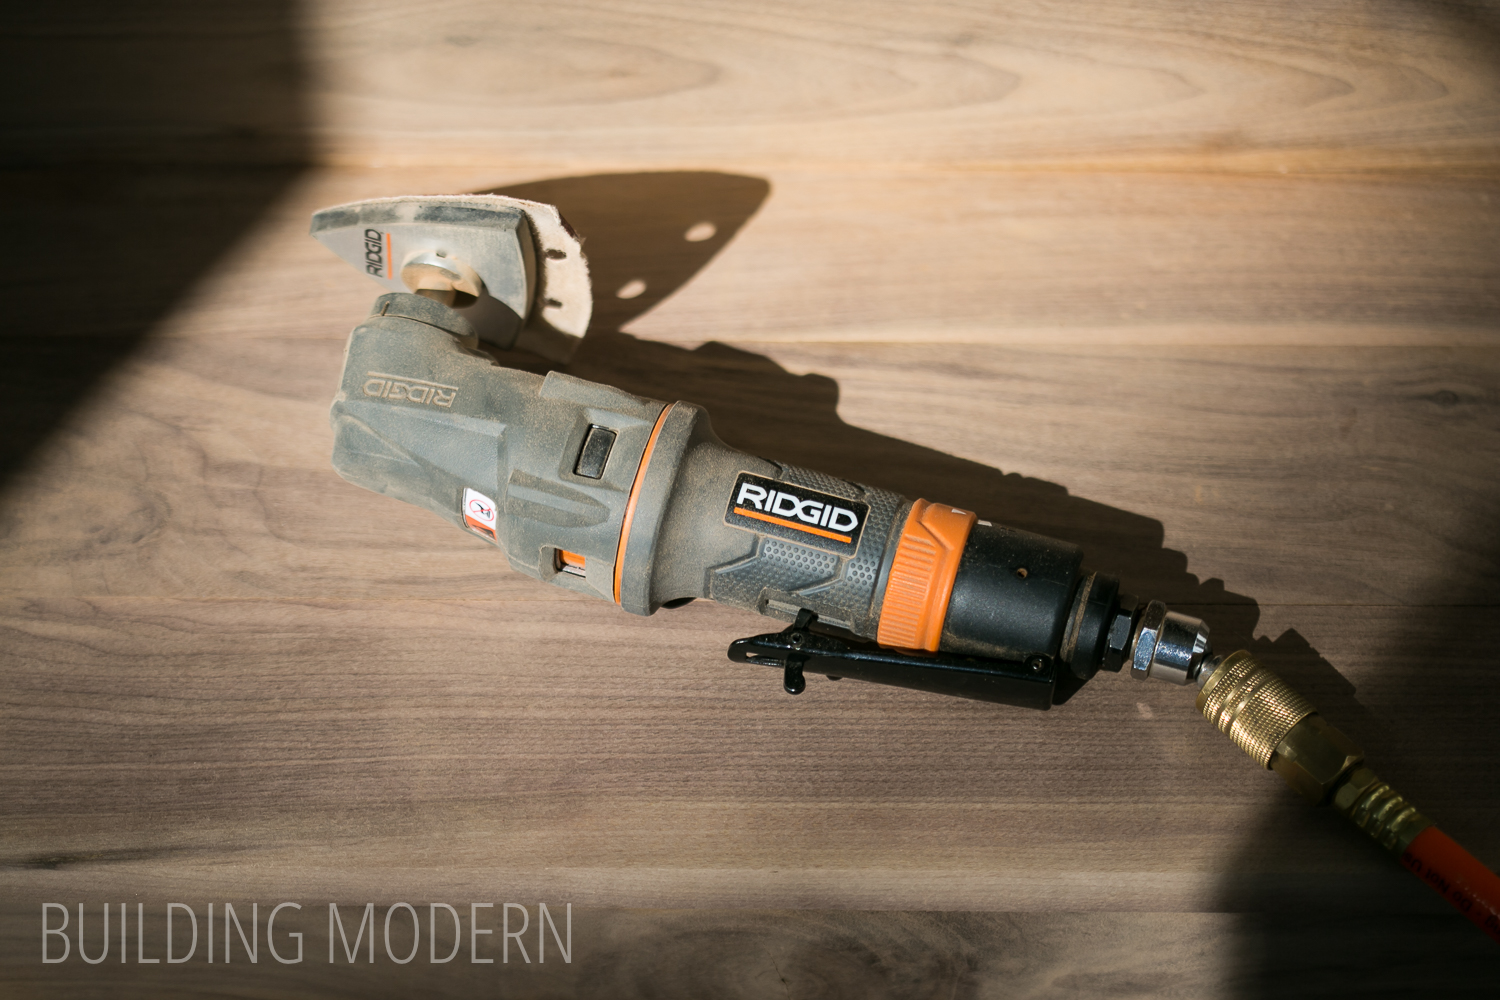 Ridgid pneumatic multi tool with sander attachment